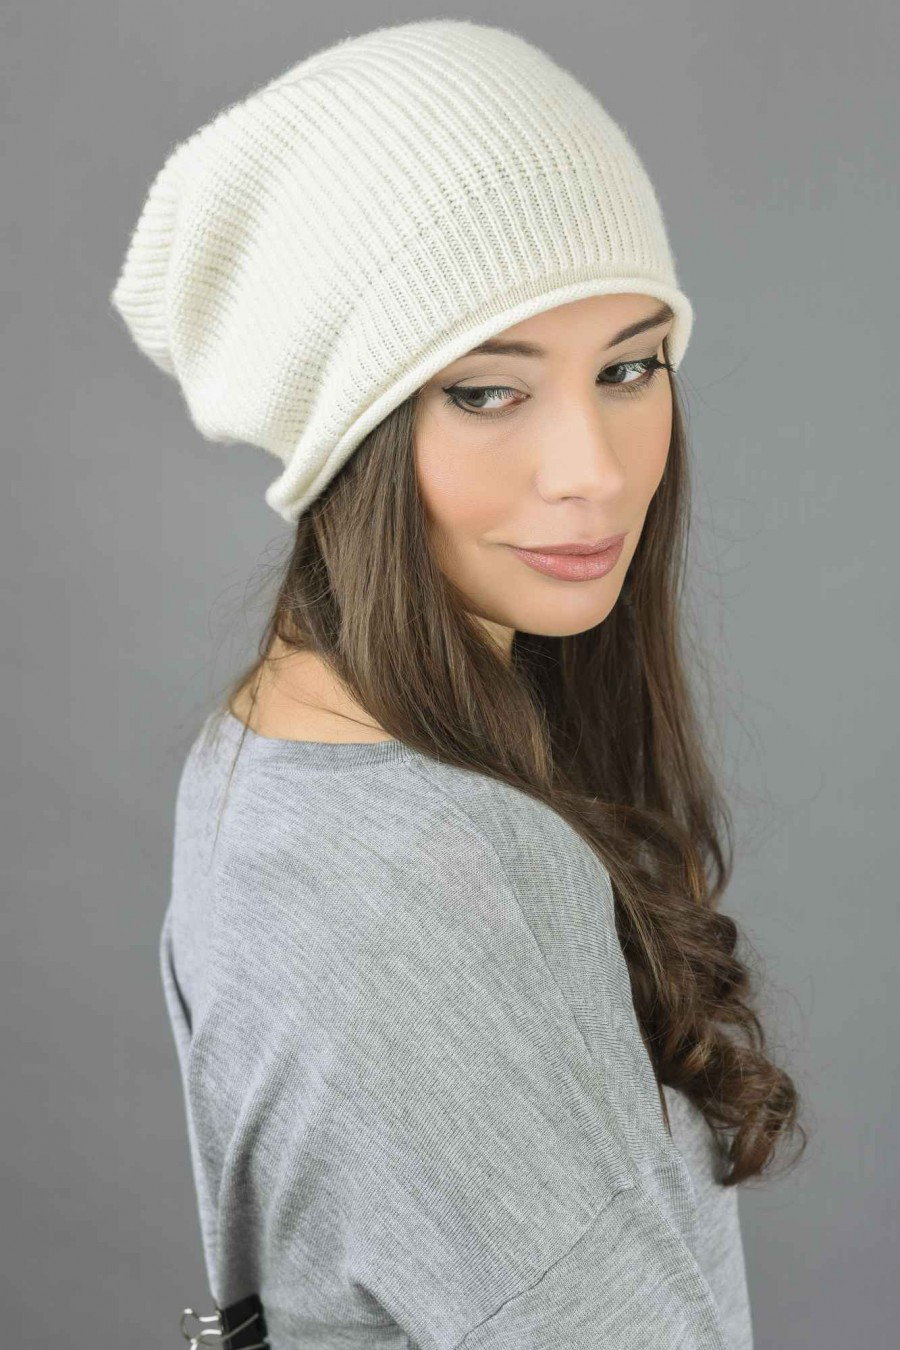 13a48d7d754 Pure Cashmere Ribbed Knitted Slouchy Beanie Hat in Cream White ...